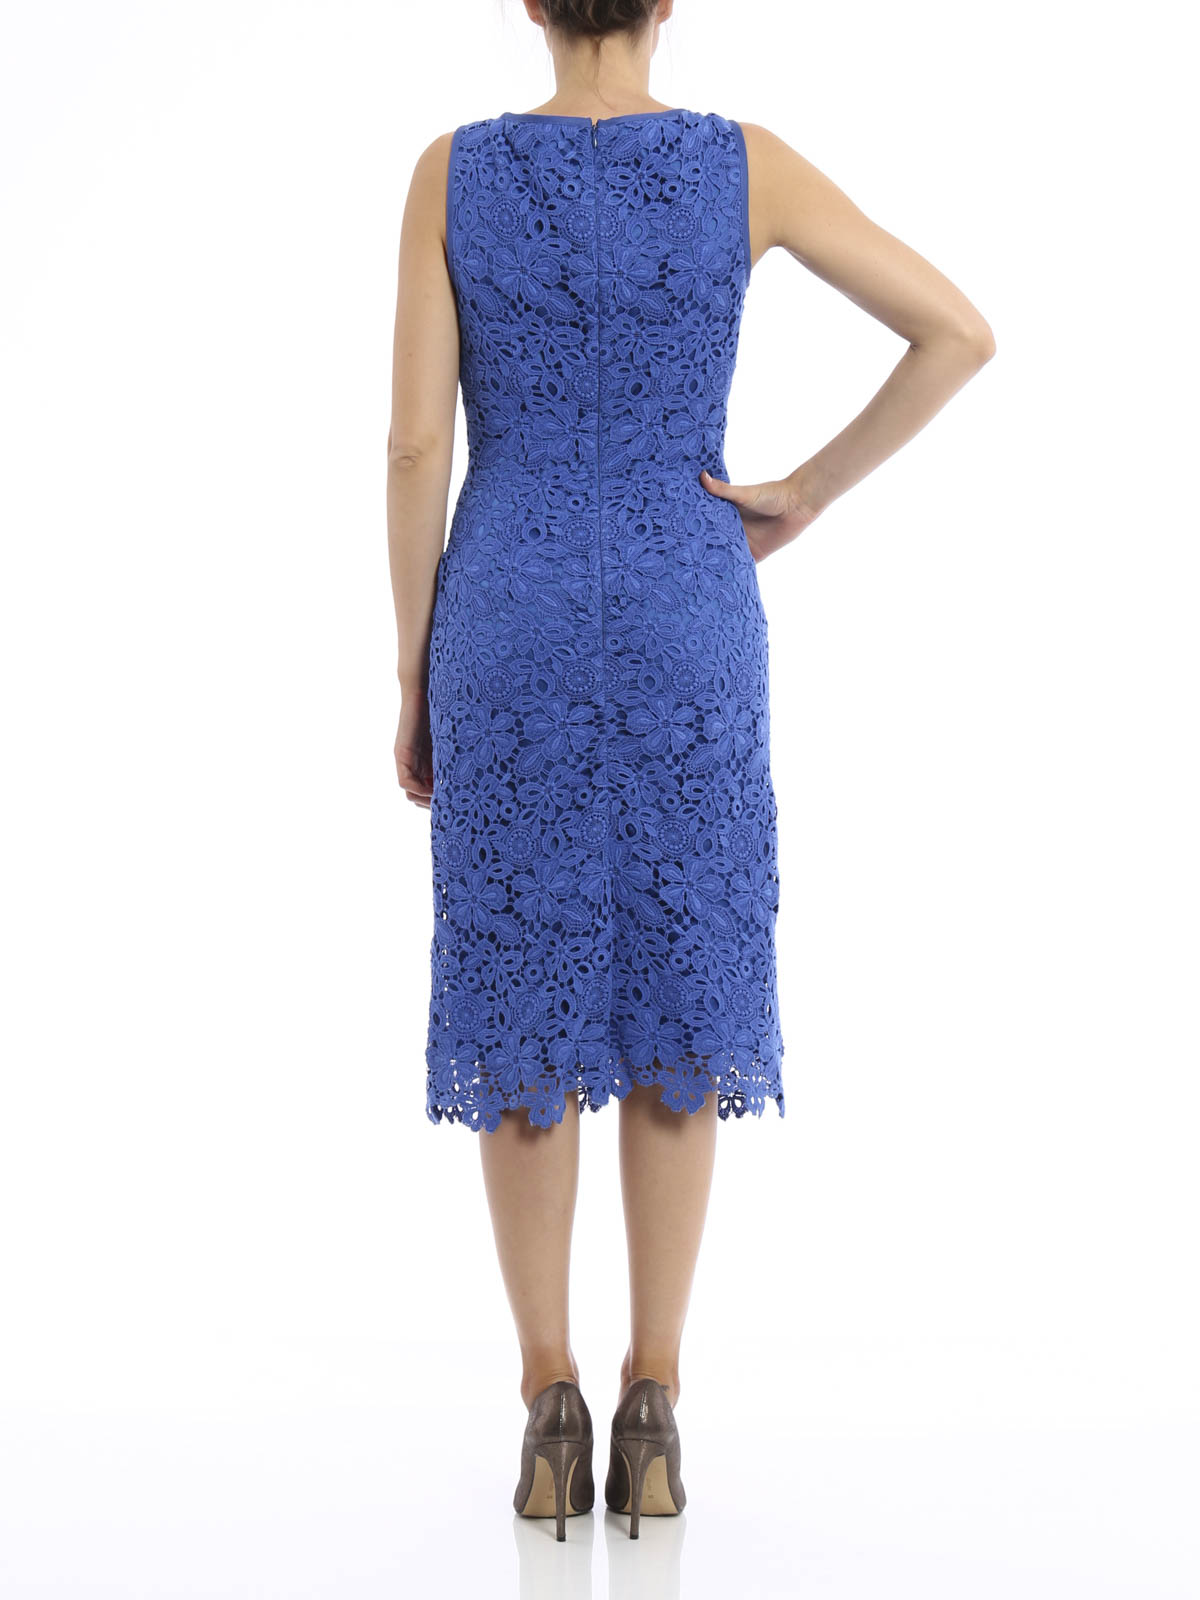 Shop for and buy lace maxi dress online at Macy's. Find lace maxi dress at Macy's.